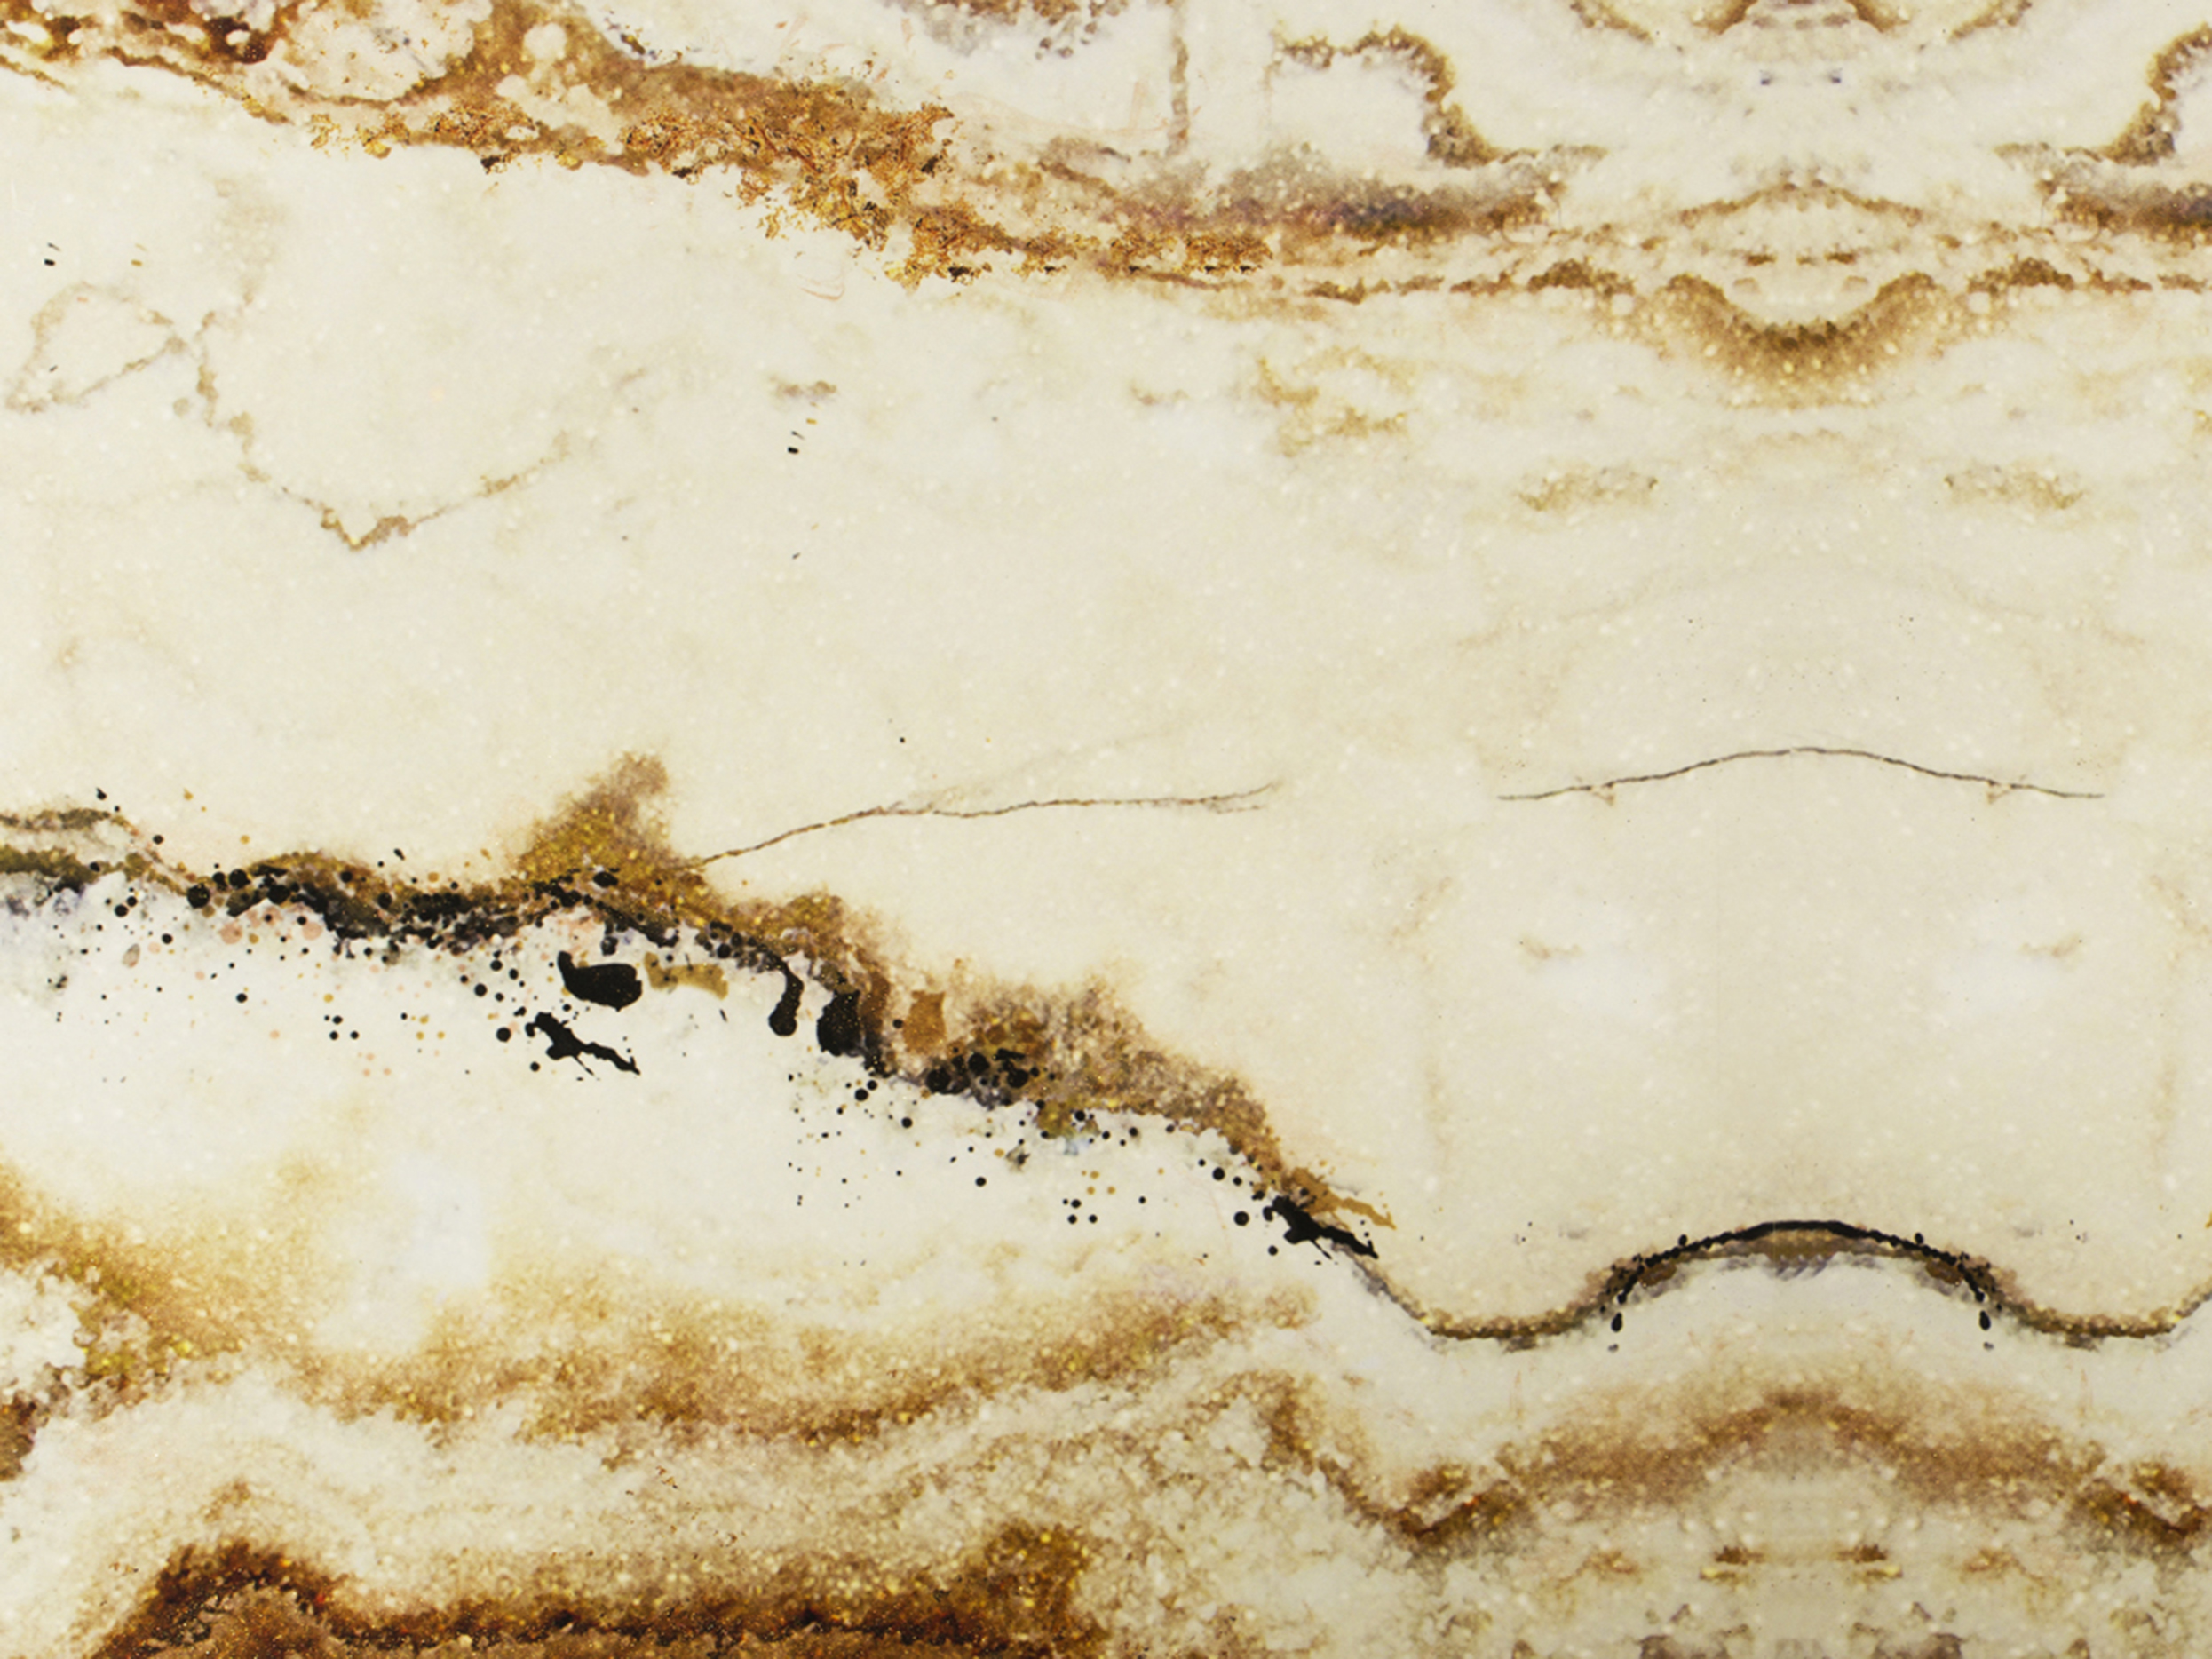 New Level of Luxury: Sumptuous Surfaces surfaces New Level of Luxury: Sophisticated Surfaces gold onyx surface 1 HR